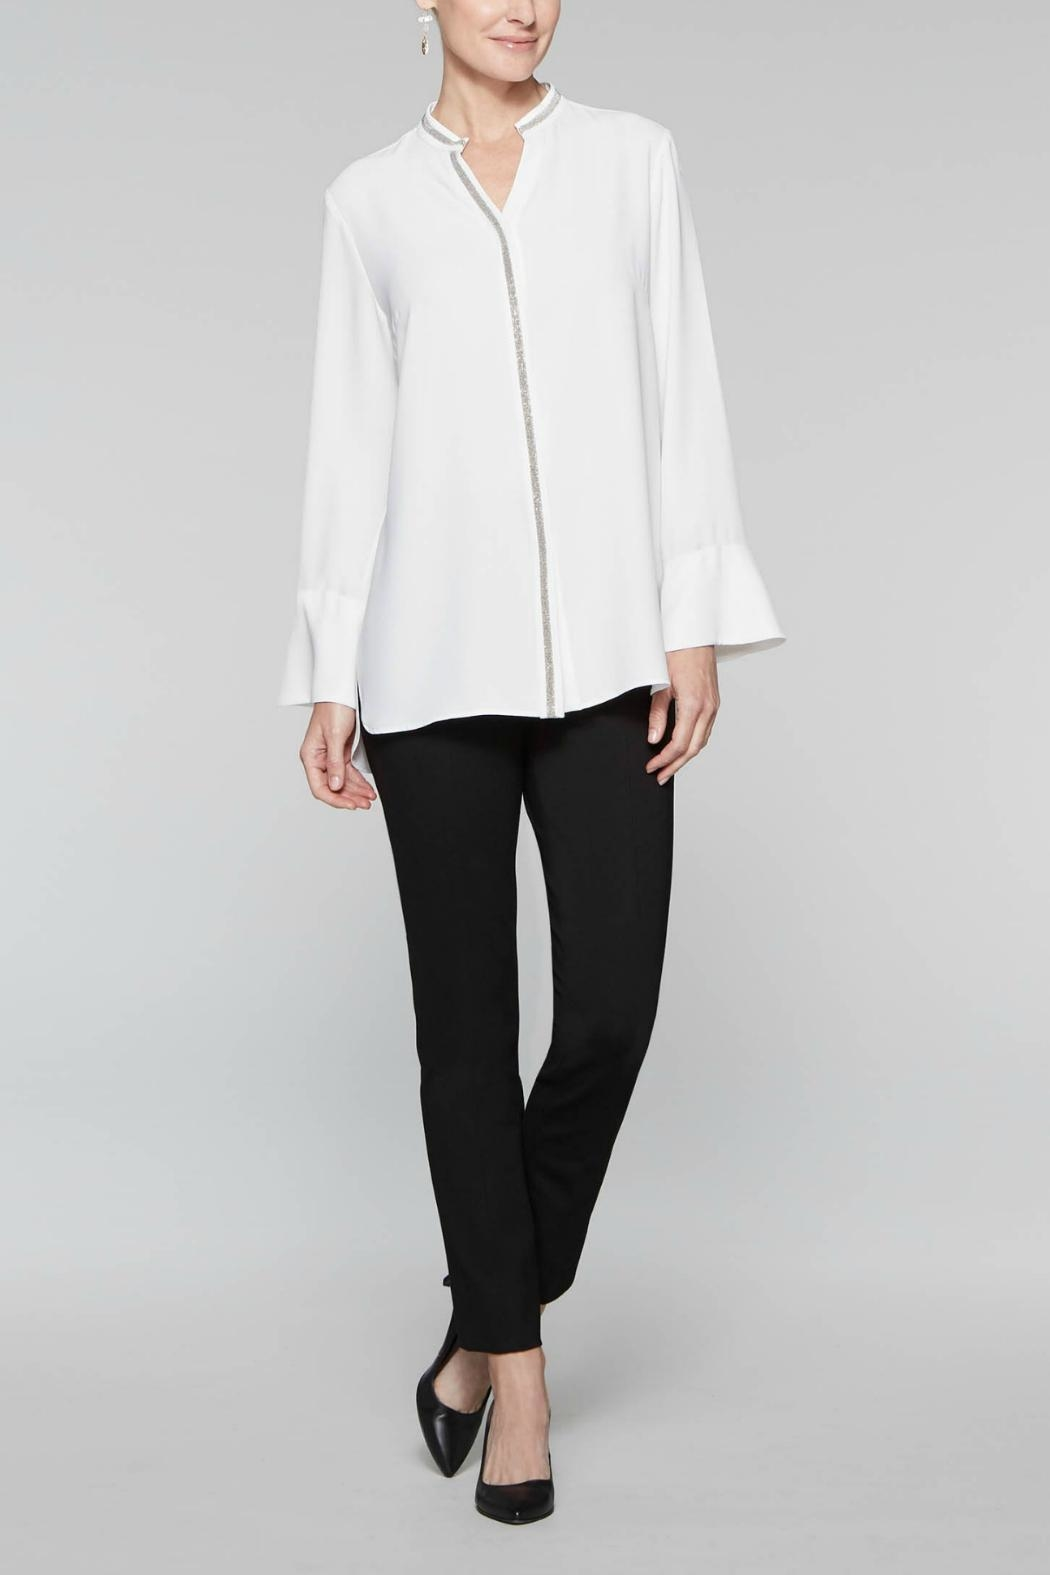 Misook Sparkle Trim Blouse - Main Image